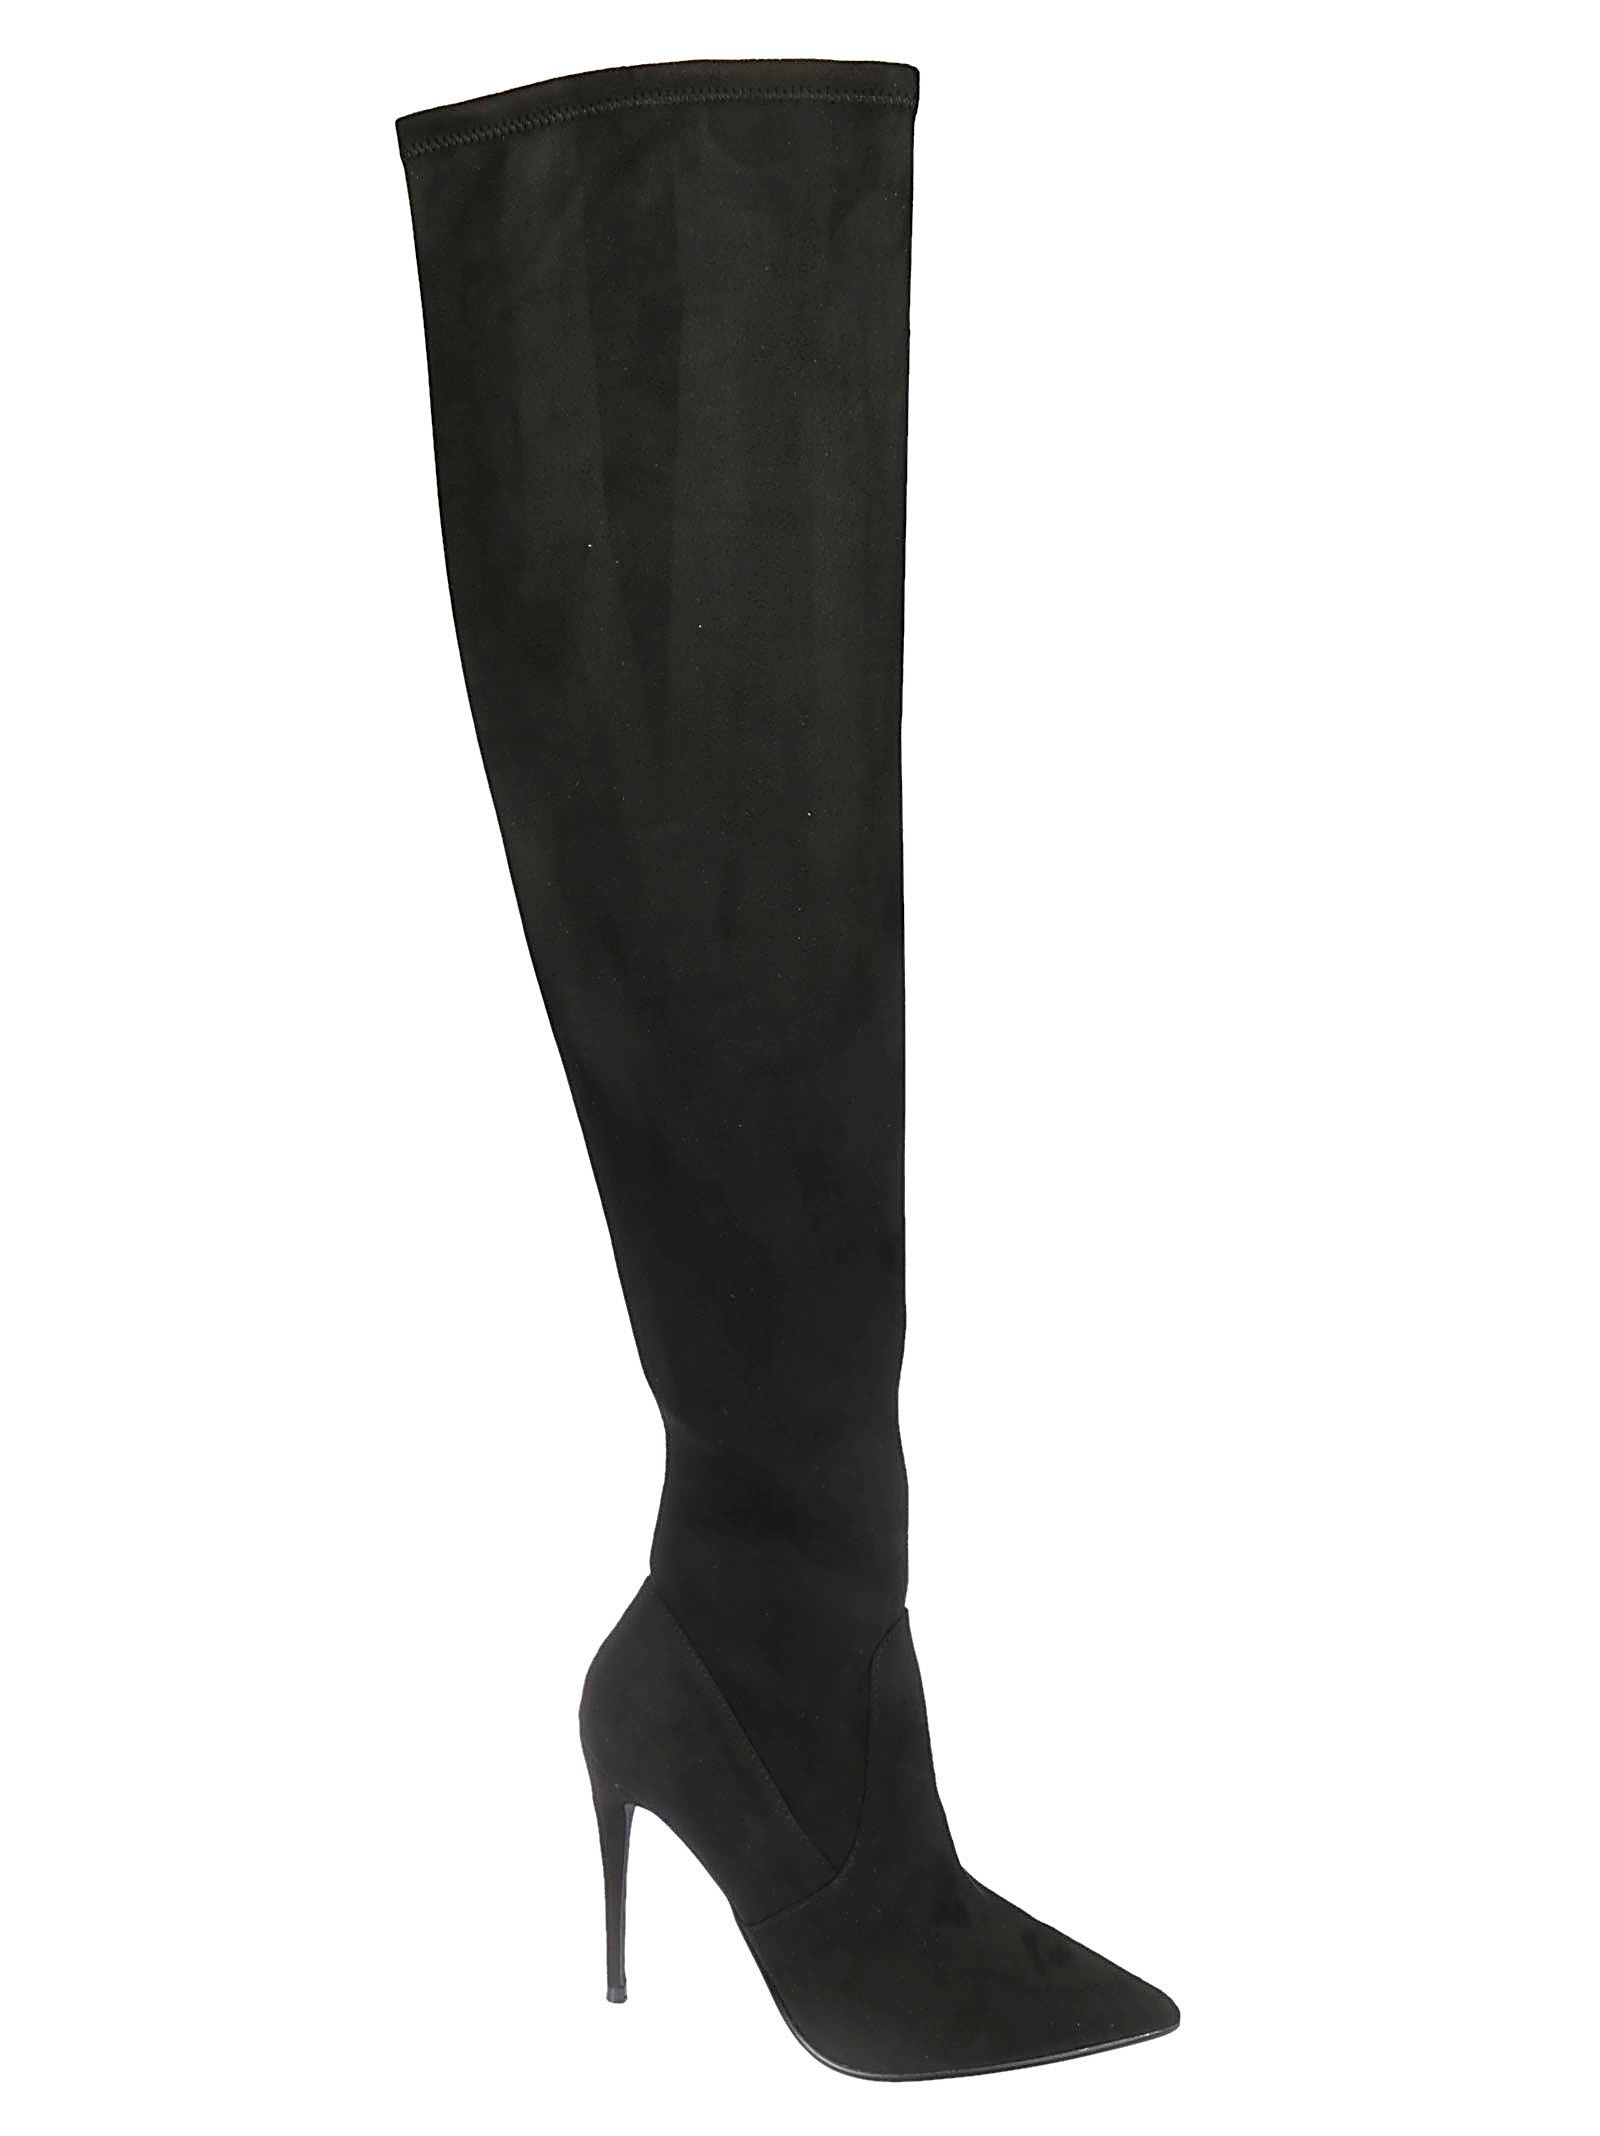 Dada Over-The-Knee Boots in Black